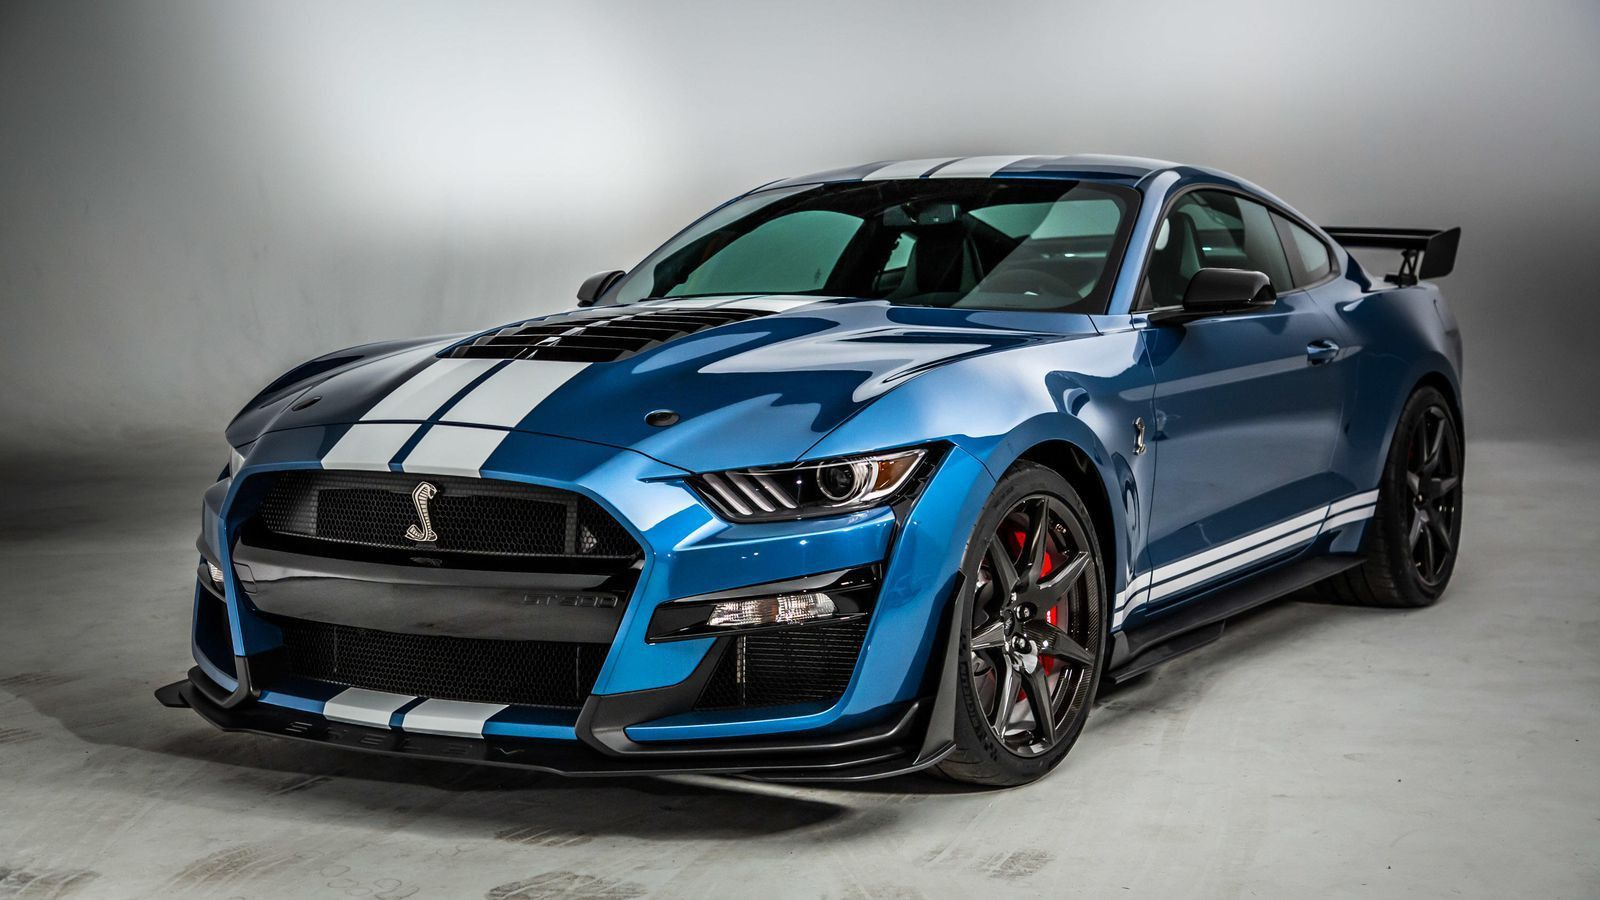 How Much Is The 2020 Ford Mustang Shelby Gt500 Review And Price In 2020 Shelby Mustang Gt500 Mustang Gt500 Shelby Gt500